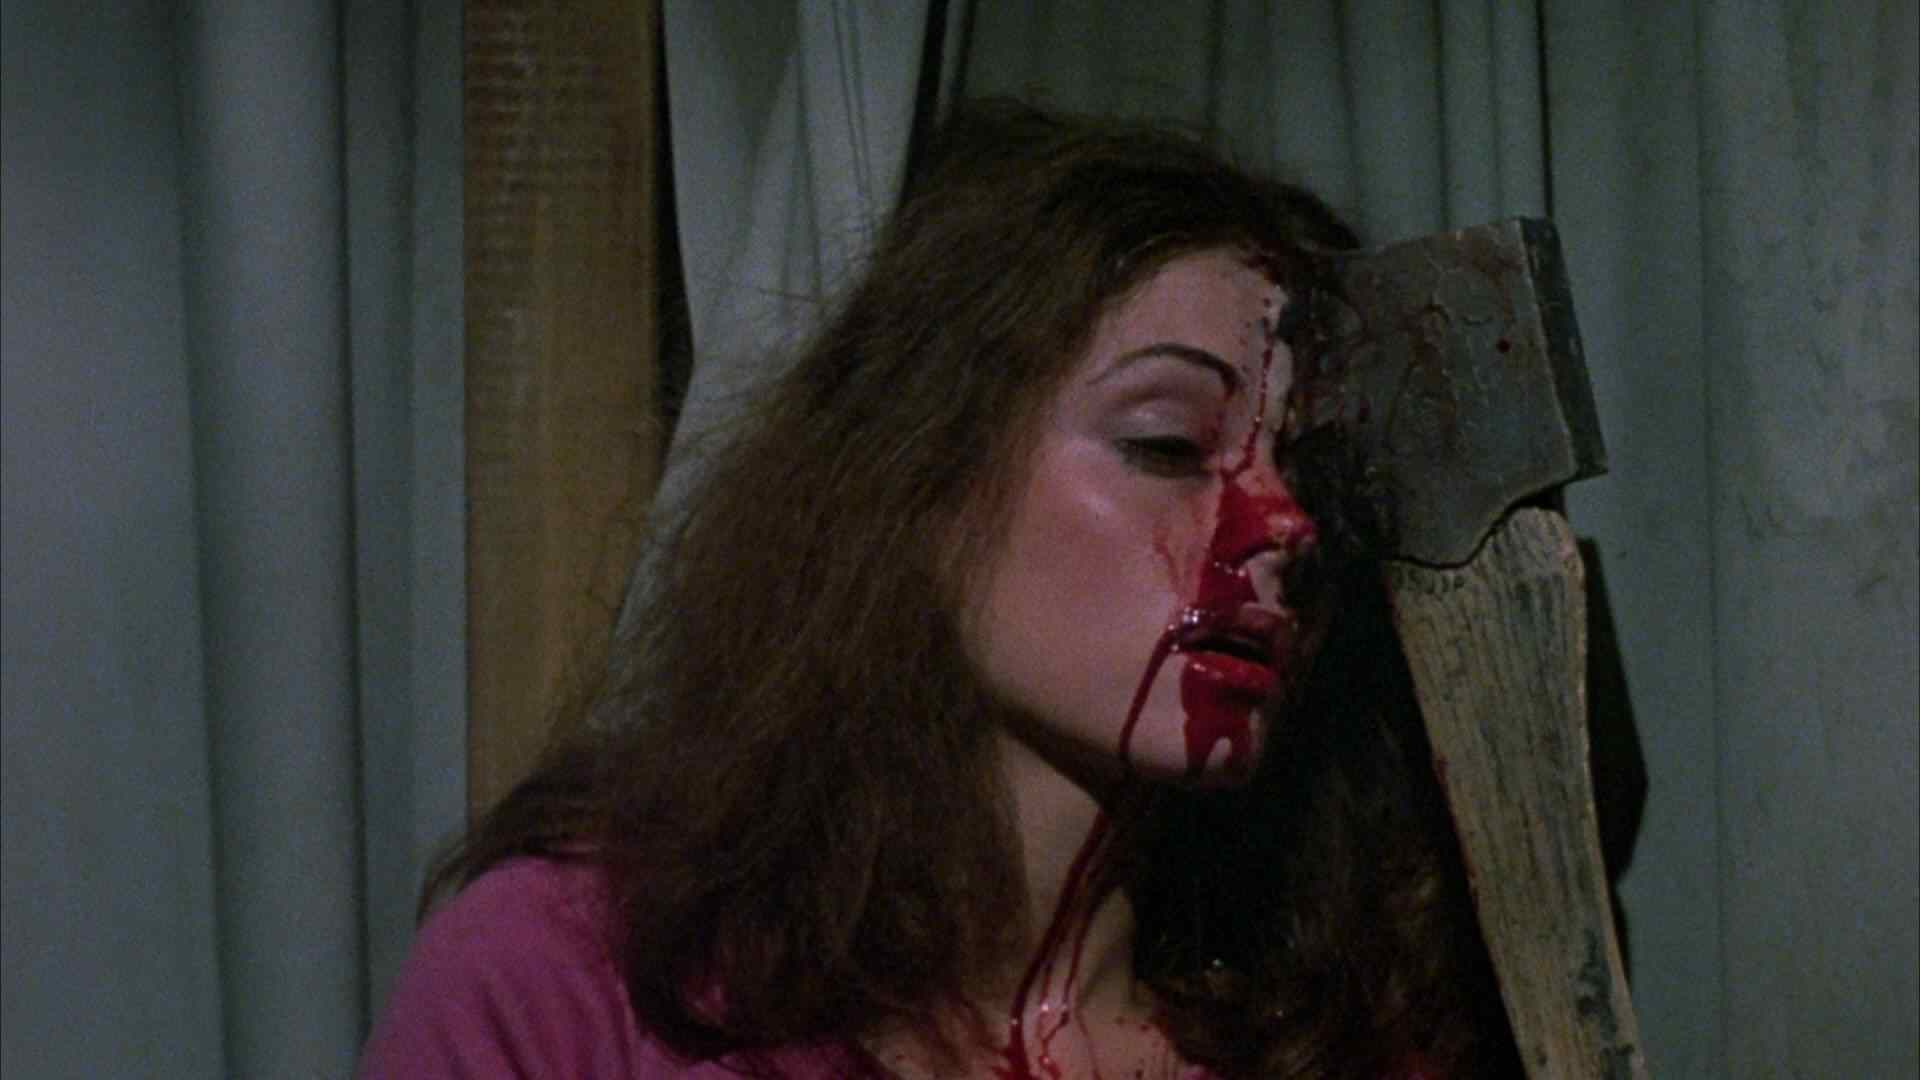 Friday The 13th series including Crazy Ralph.